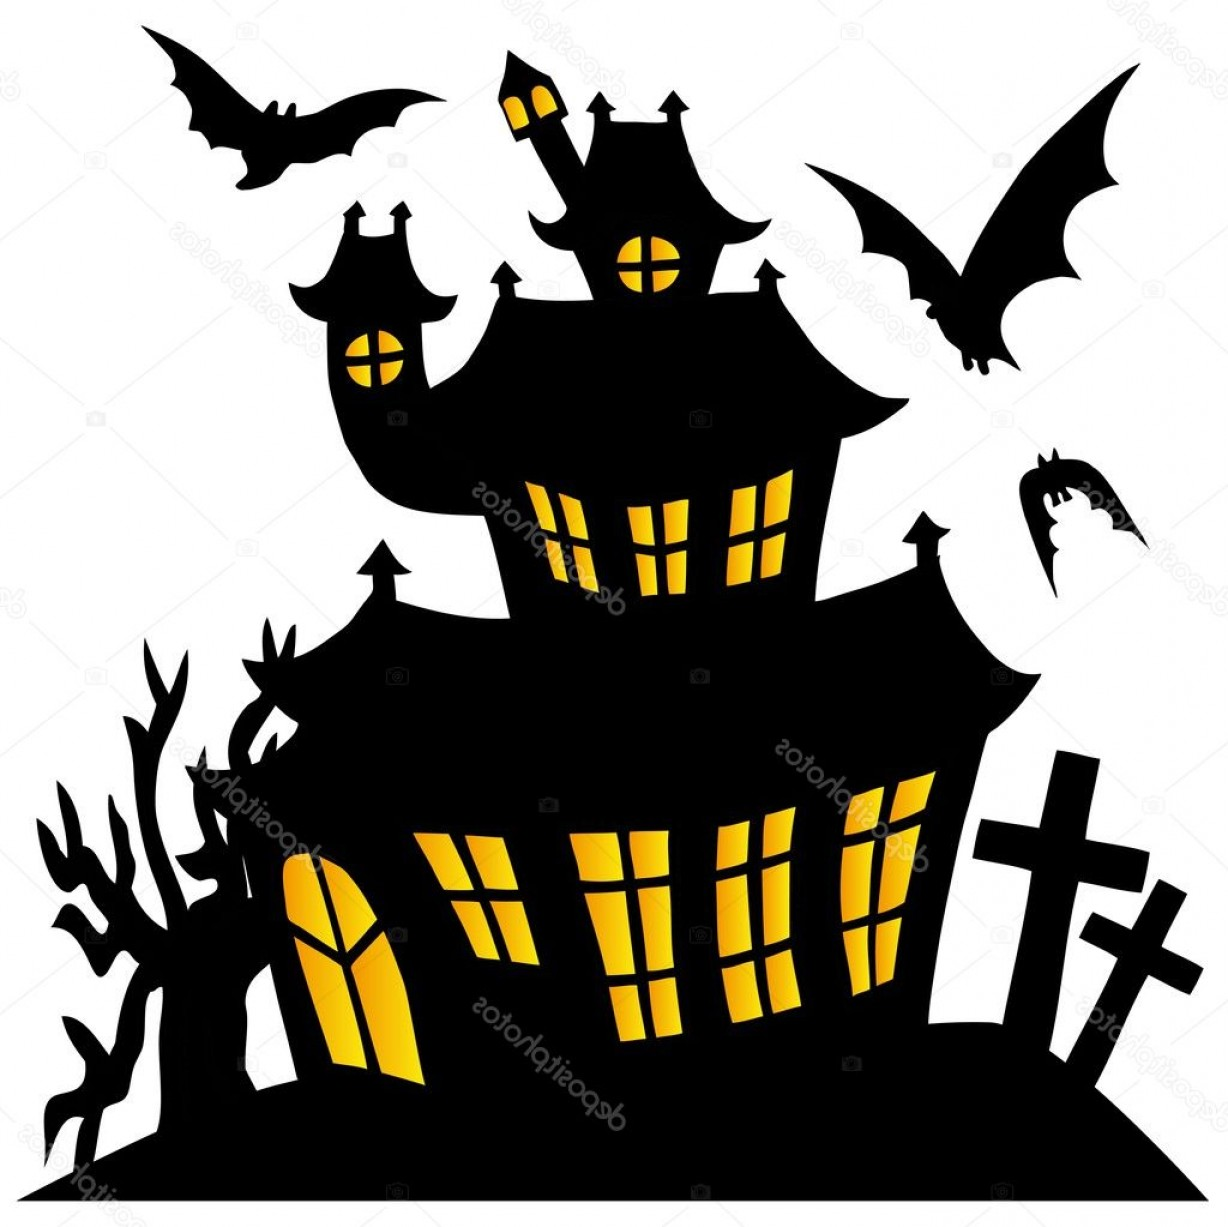 Halloween Haunted House Silhouette Vector: Stock Illustration Silhouette Spooky House